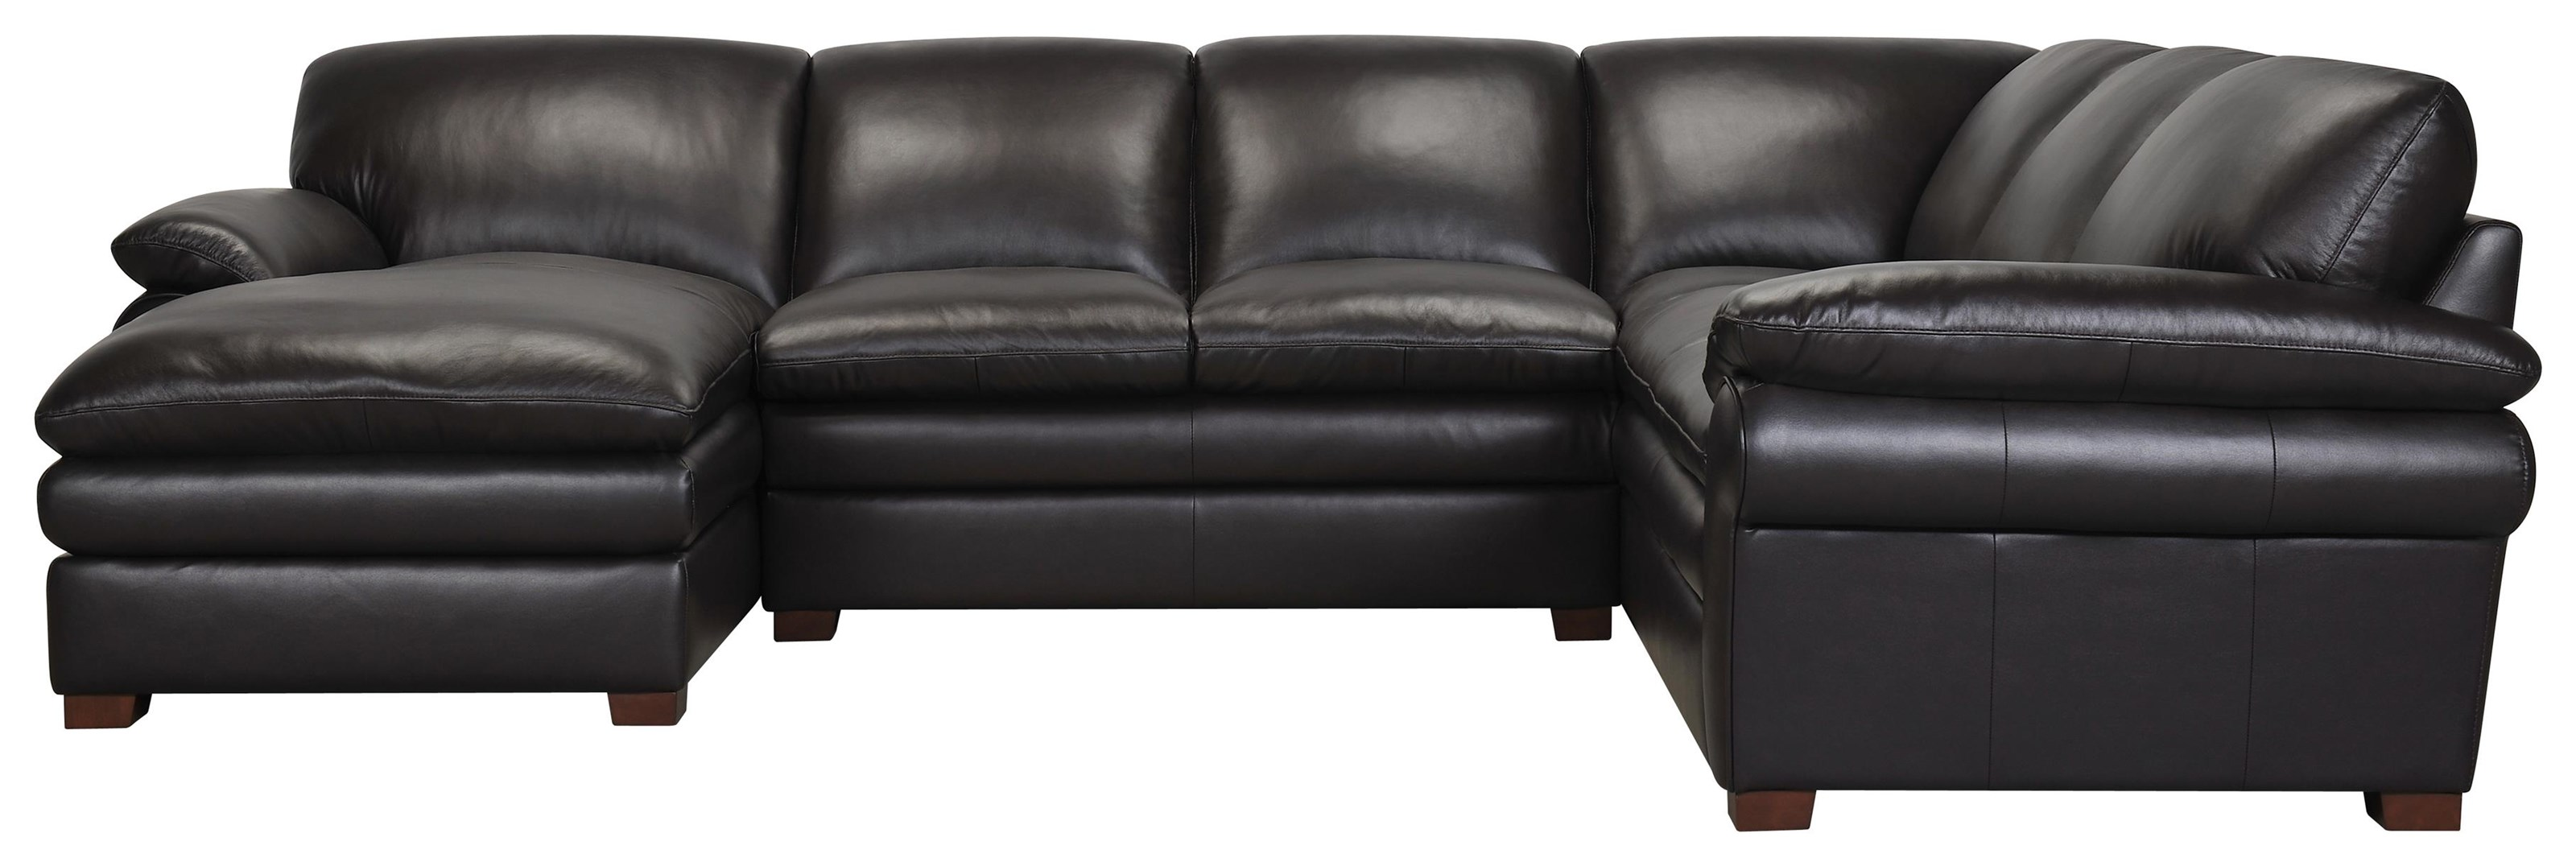 3 Piece Leather Match Sectional